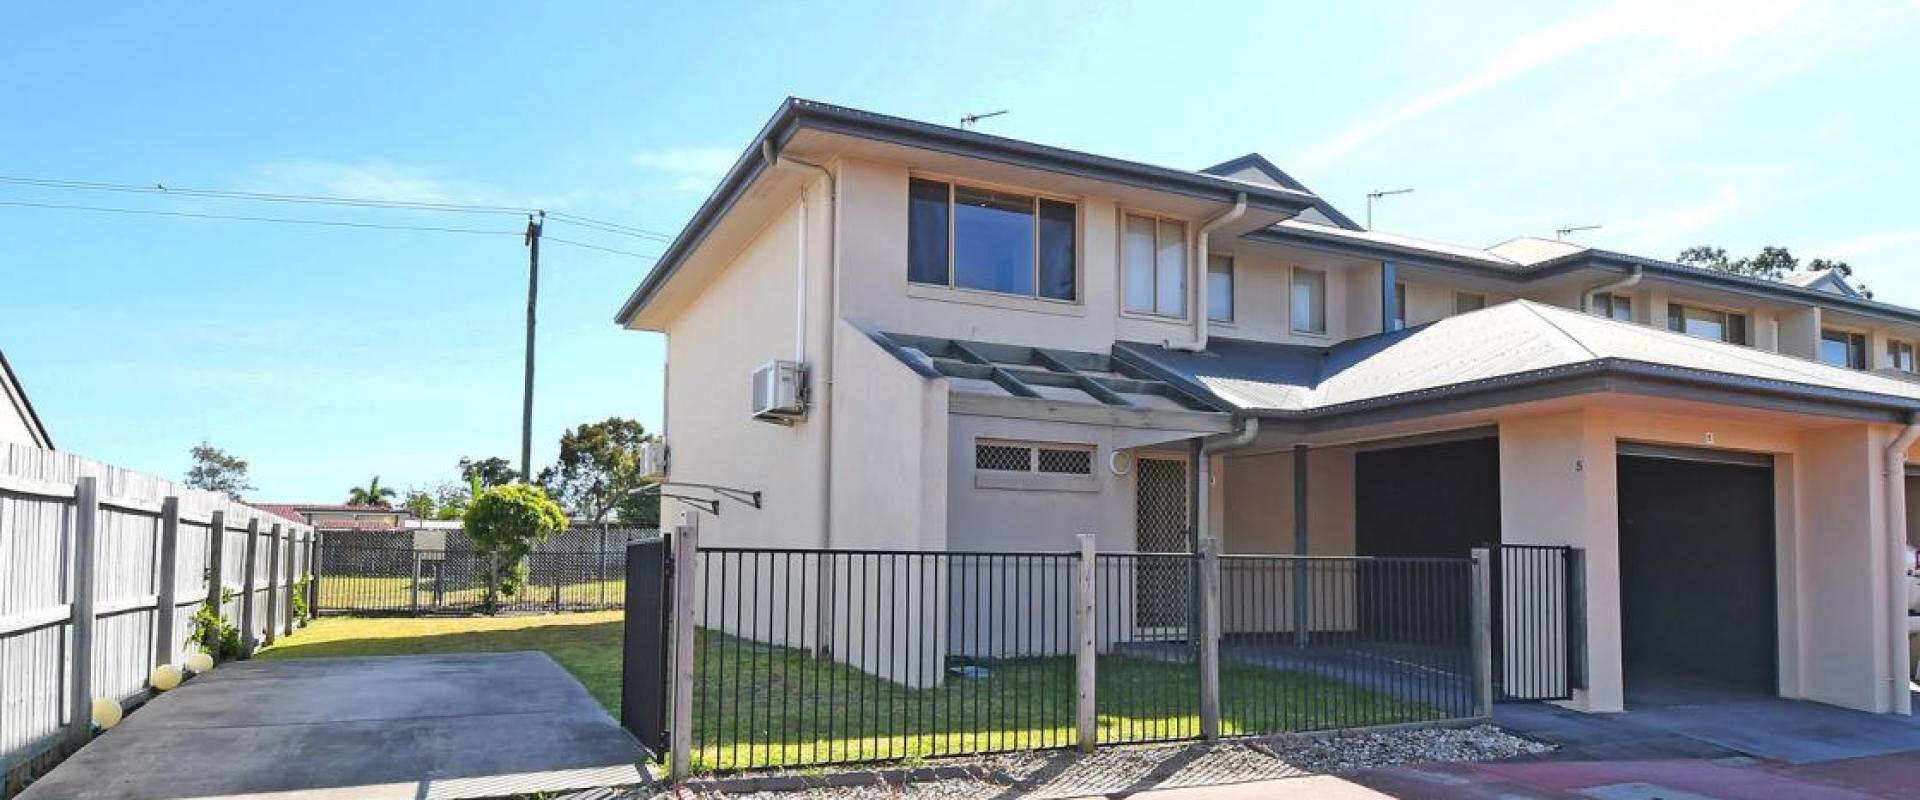 INVEST - ADJACENT THE HERVEY BAY GOLF AND COUNTRY CLUB, ACROSS THE ROAD FROM THE ELI WATERS SHOPPING CENTRE, SPACIOUS UNIT ADDITIONAL SIDE CAR PARKING